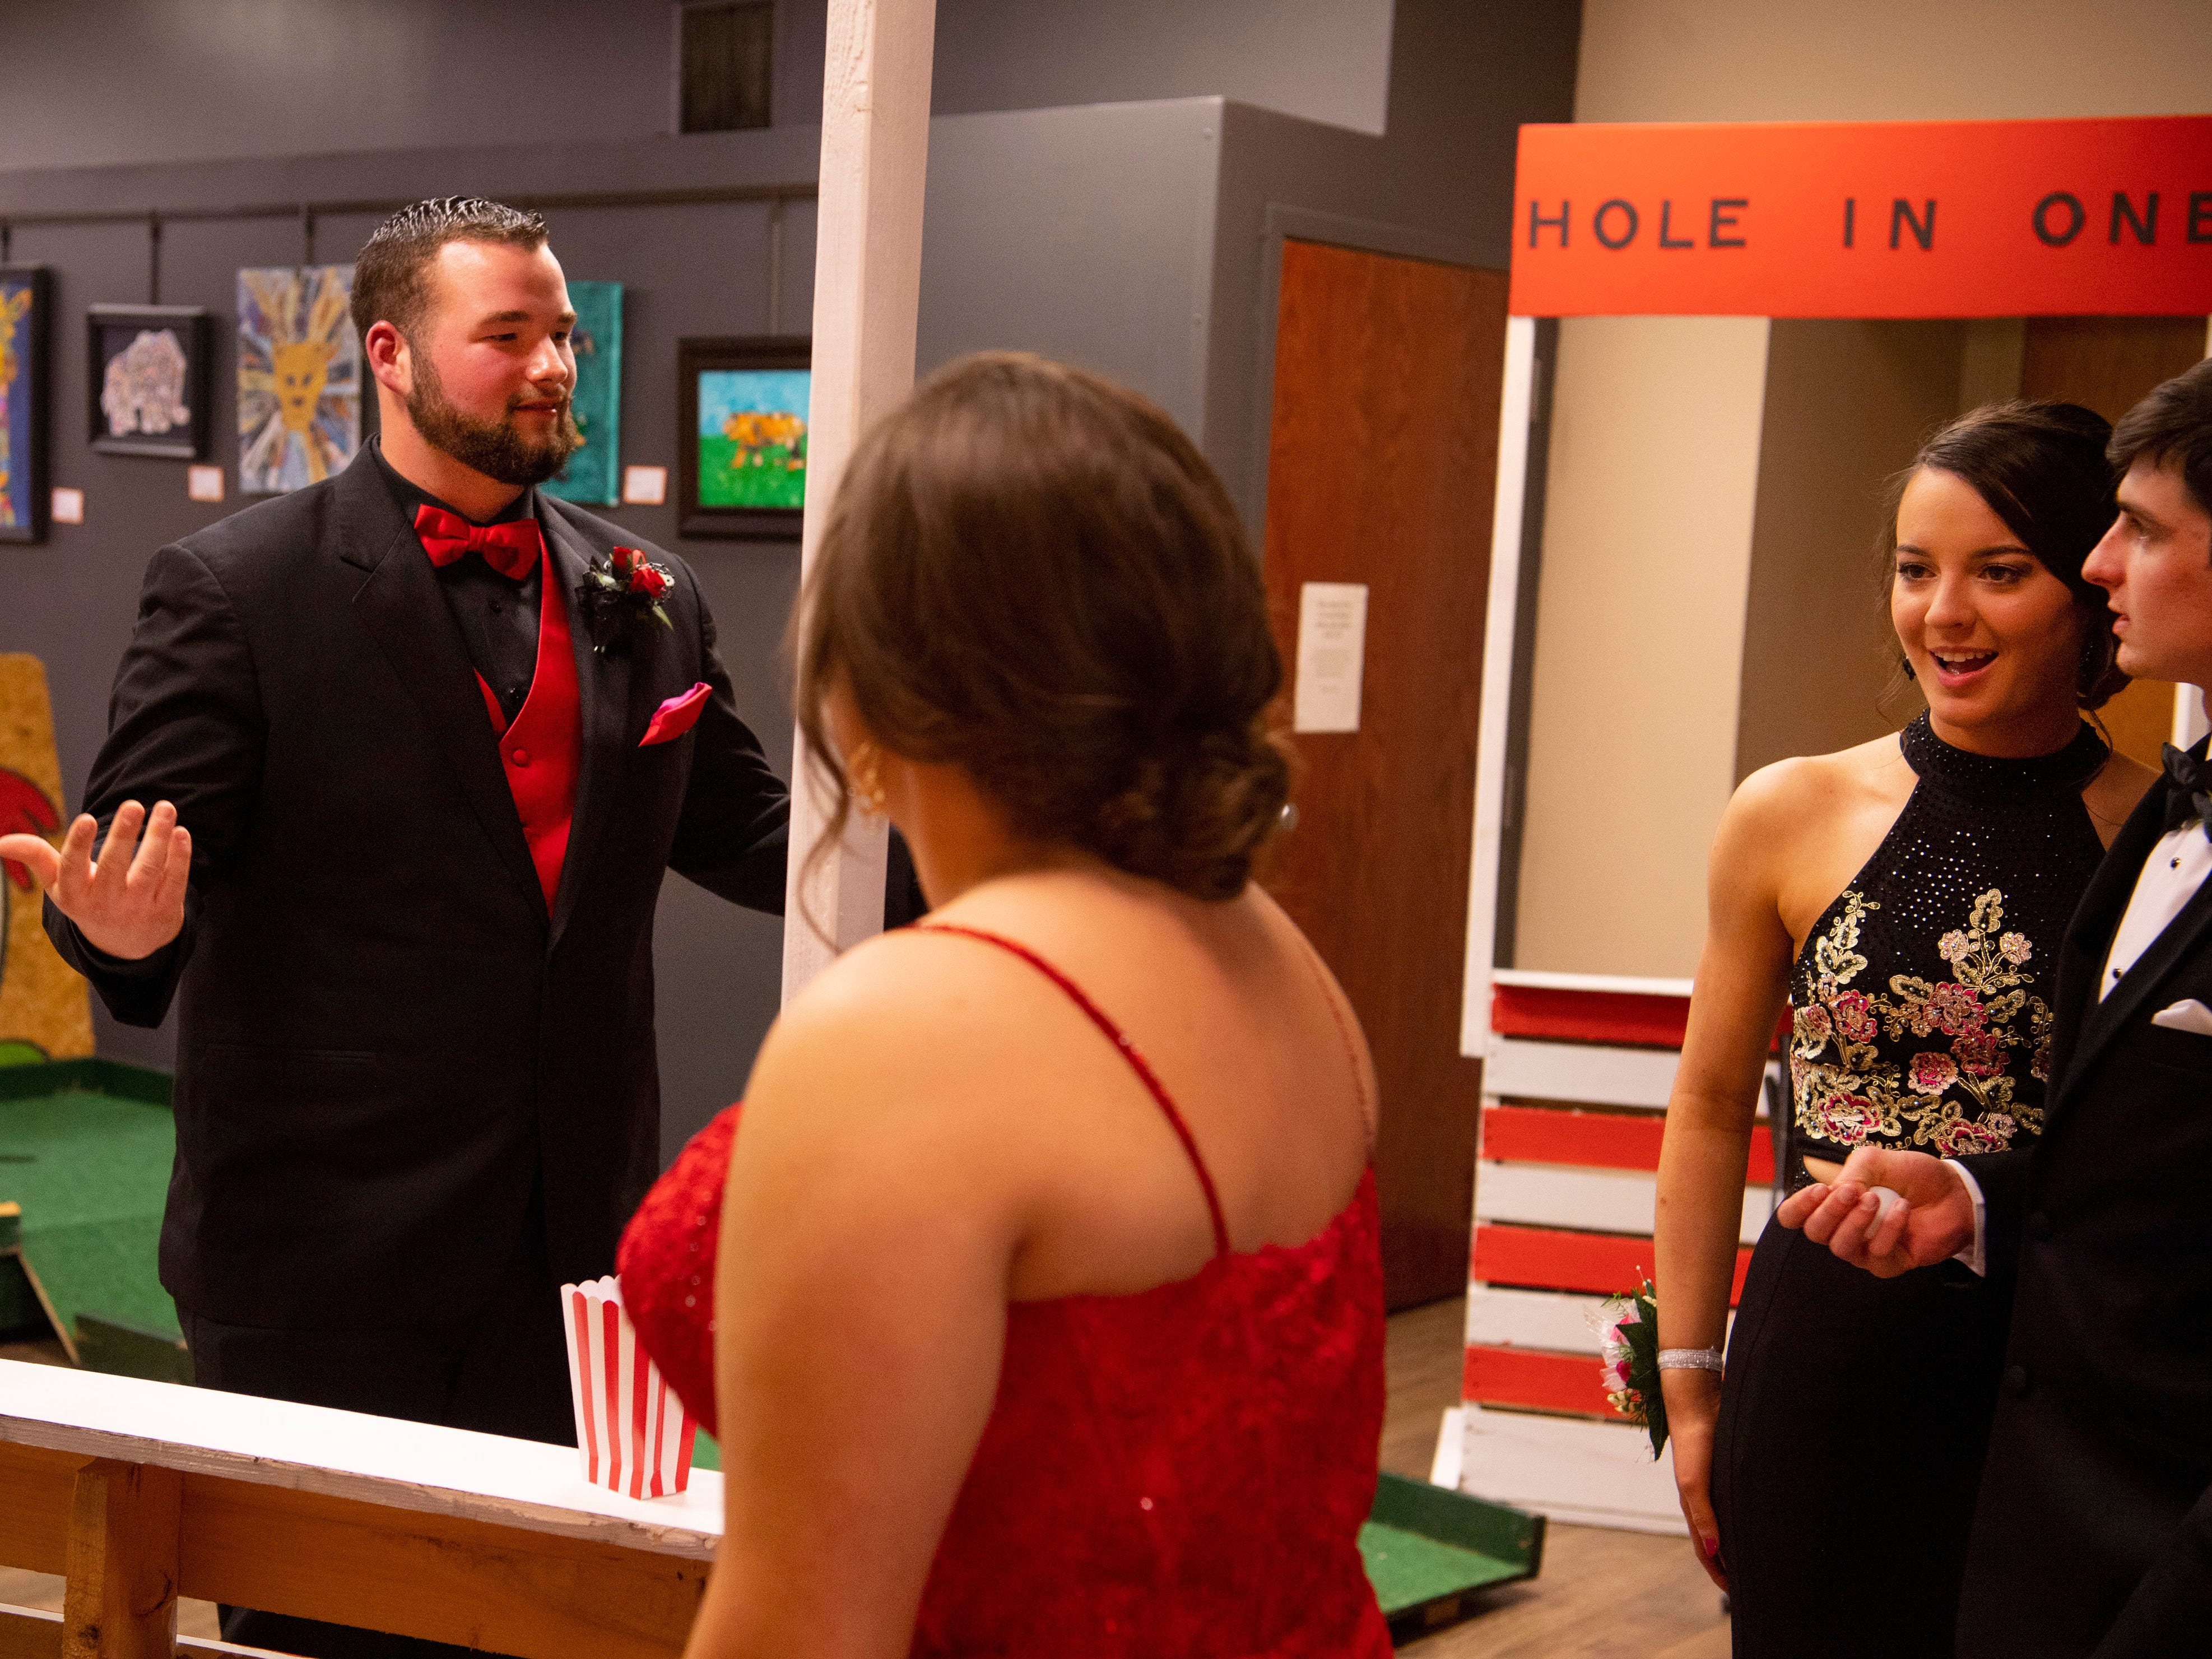 """Wyatt Wood, 17, left, celebrates his 3-for-3 showing in the Ping Pong Toss at """"The Greatest Prom on Earth"""" at Milestones Saturday night. Also pictured are, from left, his date, Keily Burton, 17, Payton Bailey, 18, and Blake Dillon, 17."""